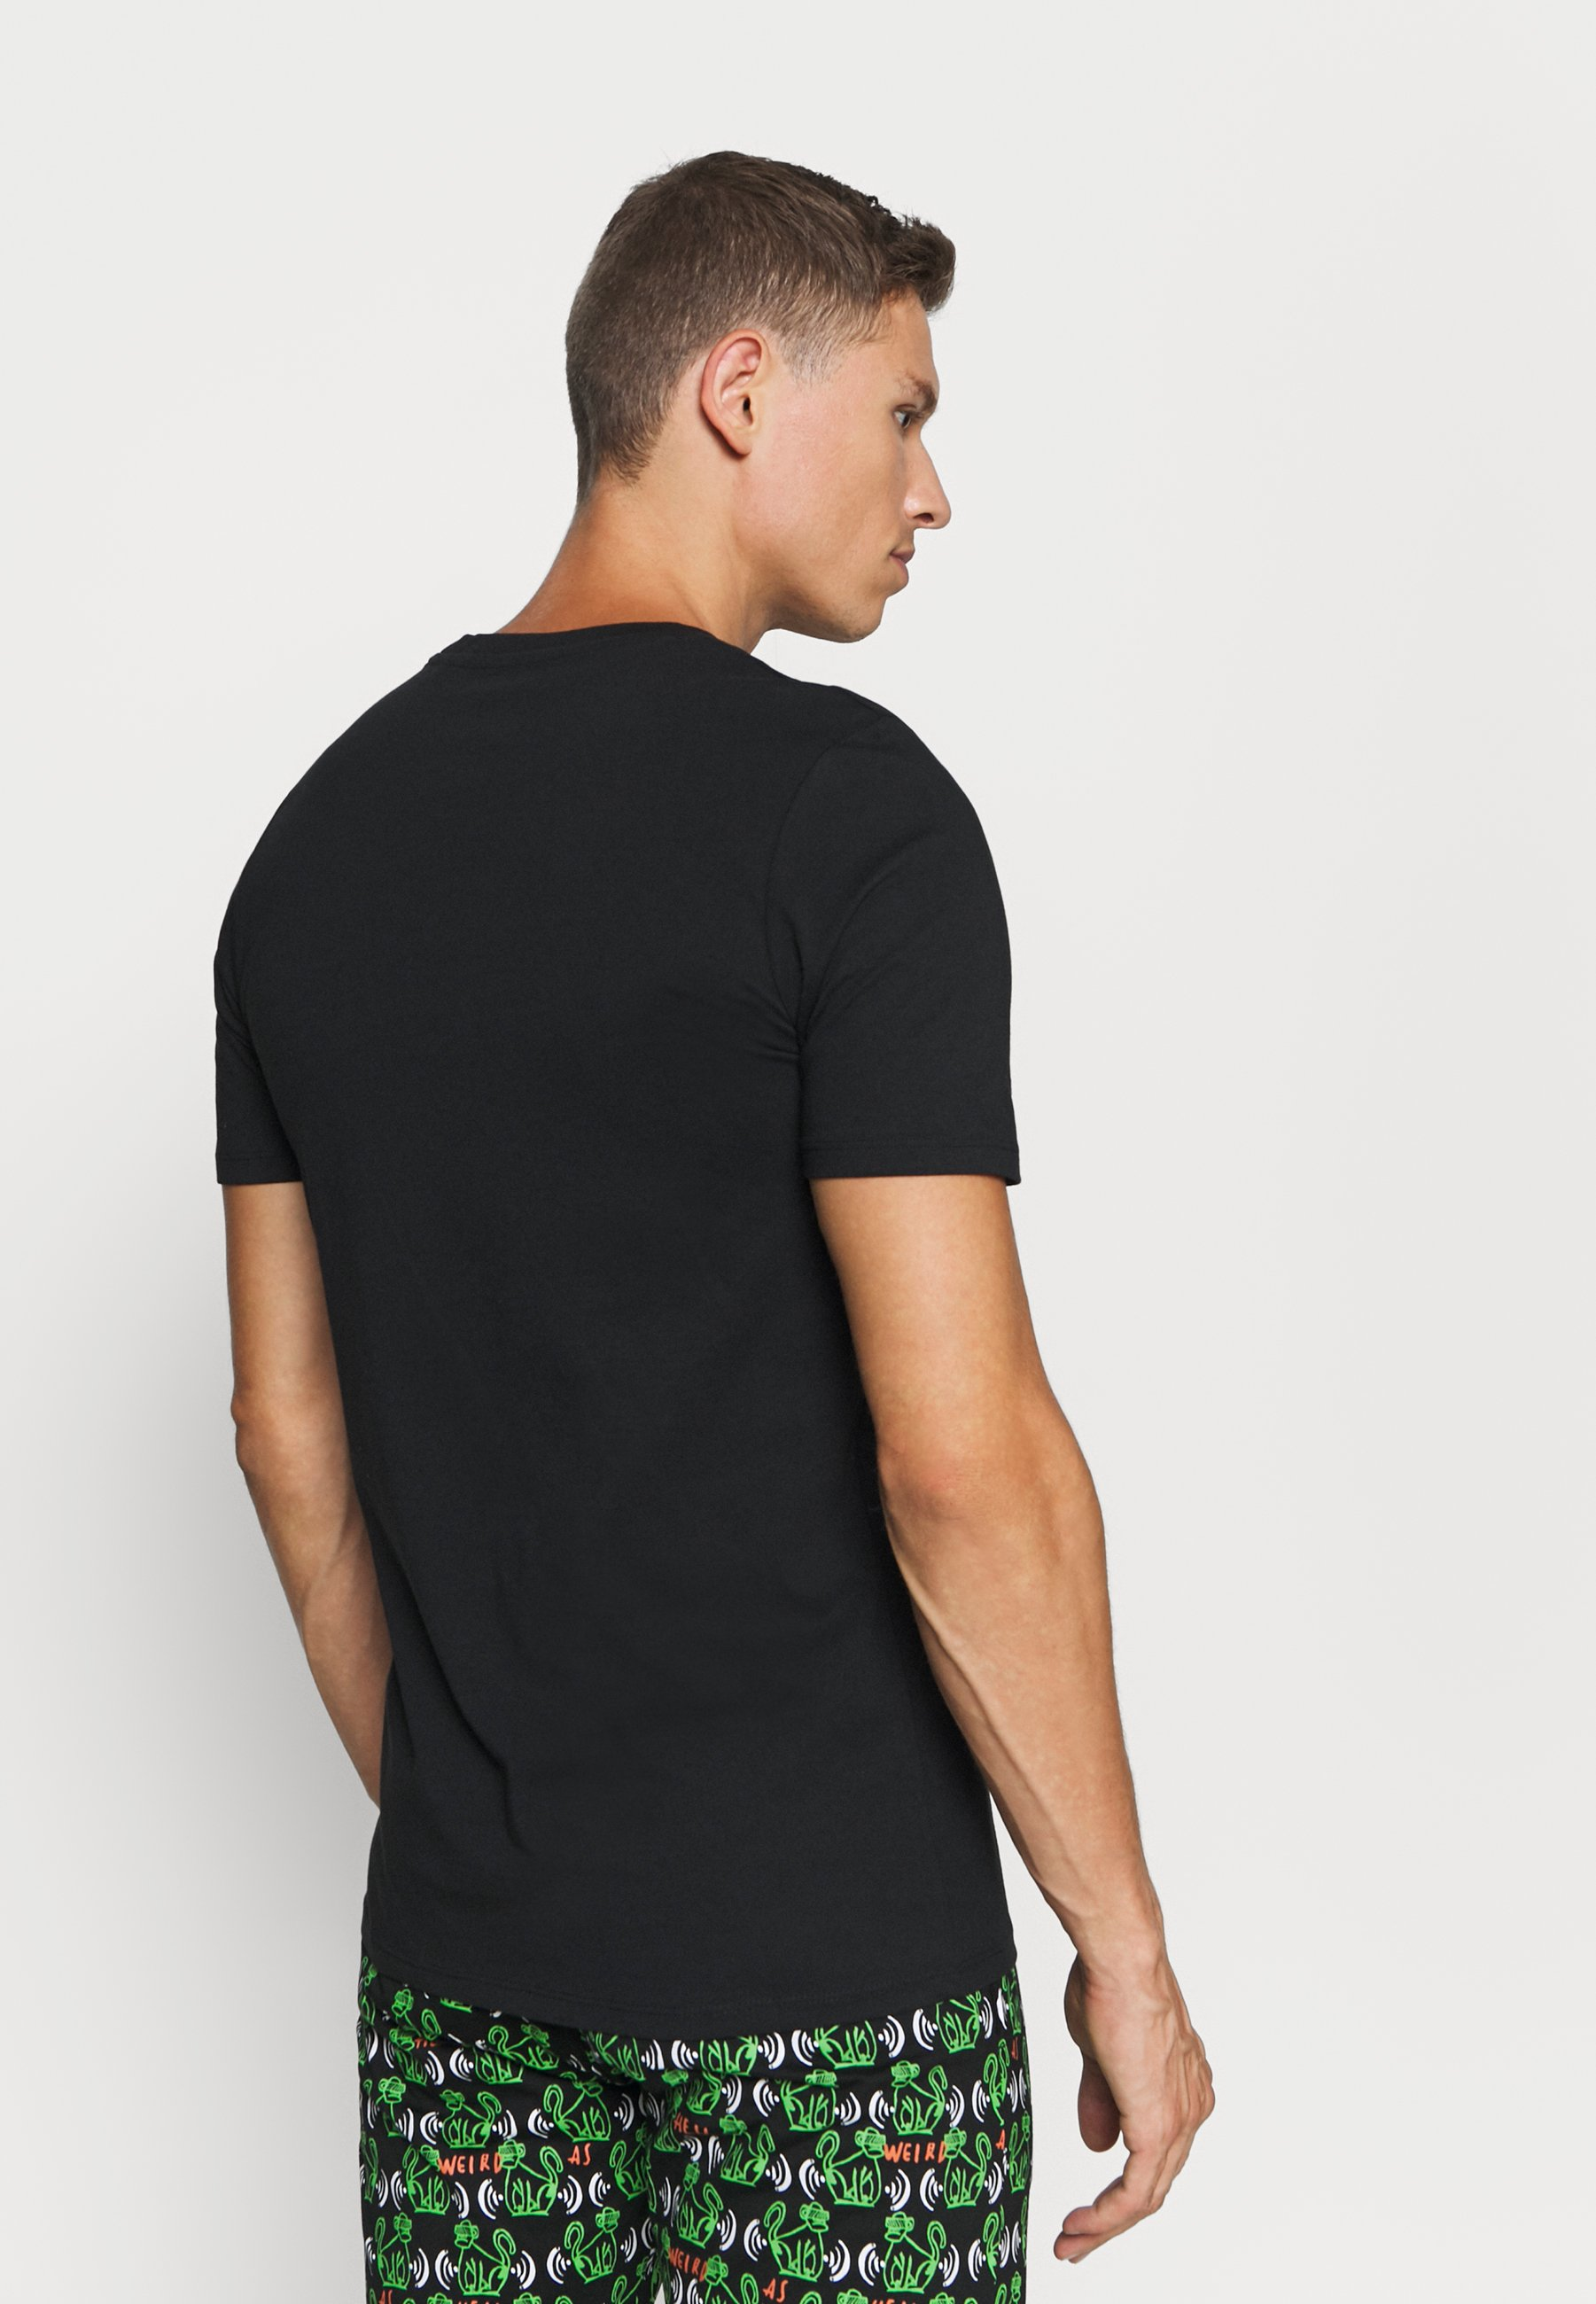 Jack & Jones Jacbasic Tee Crew Neck 4 Pack - Koszulka Do Spania Black